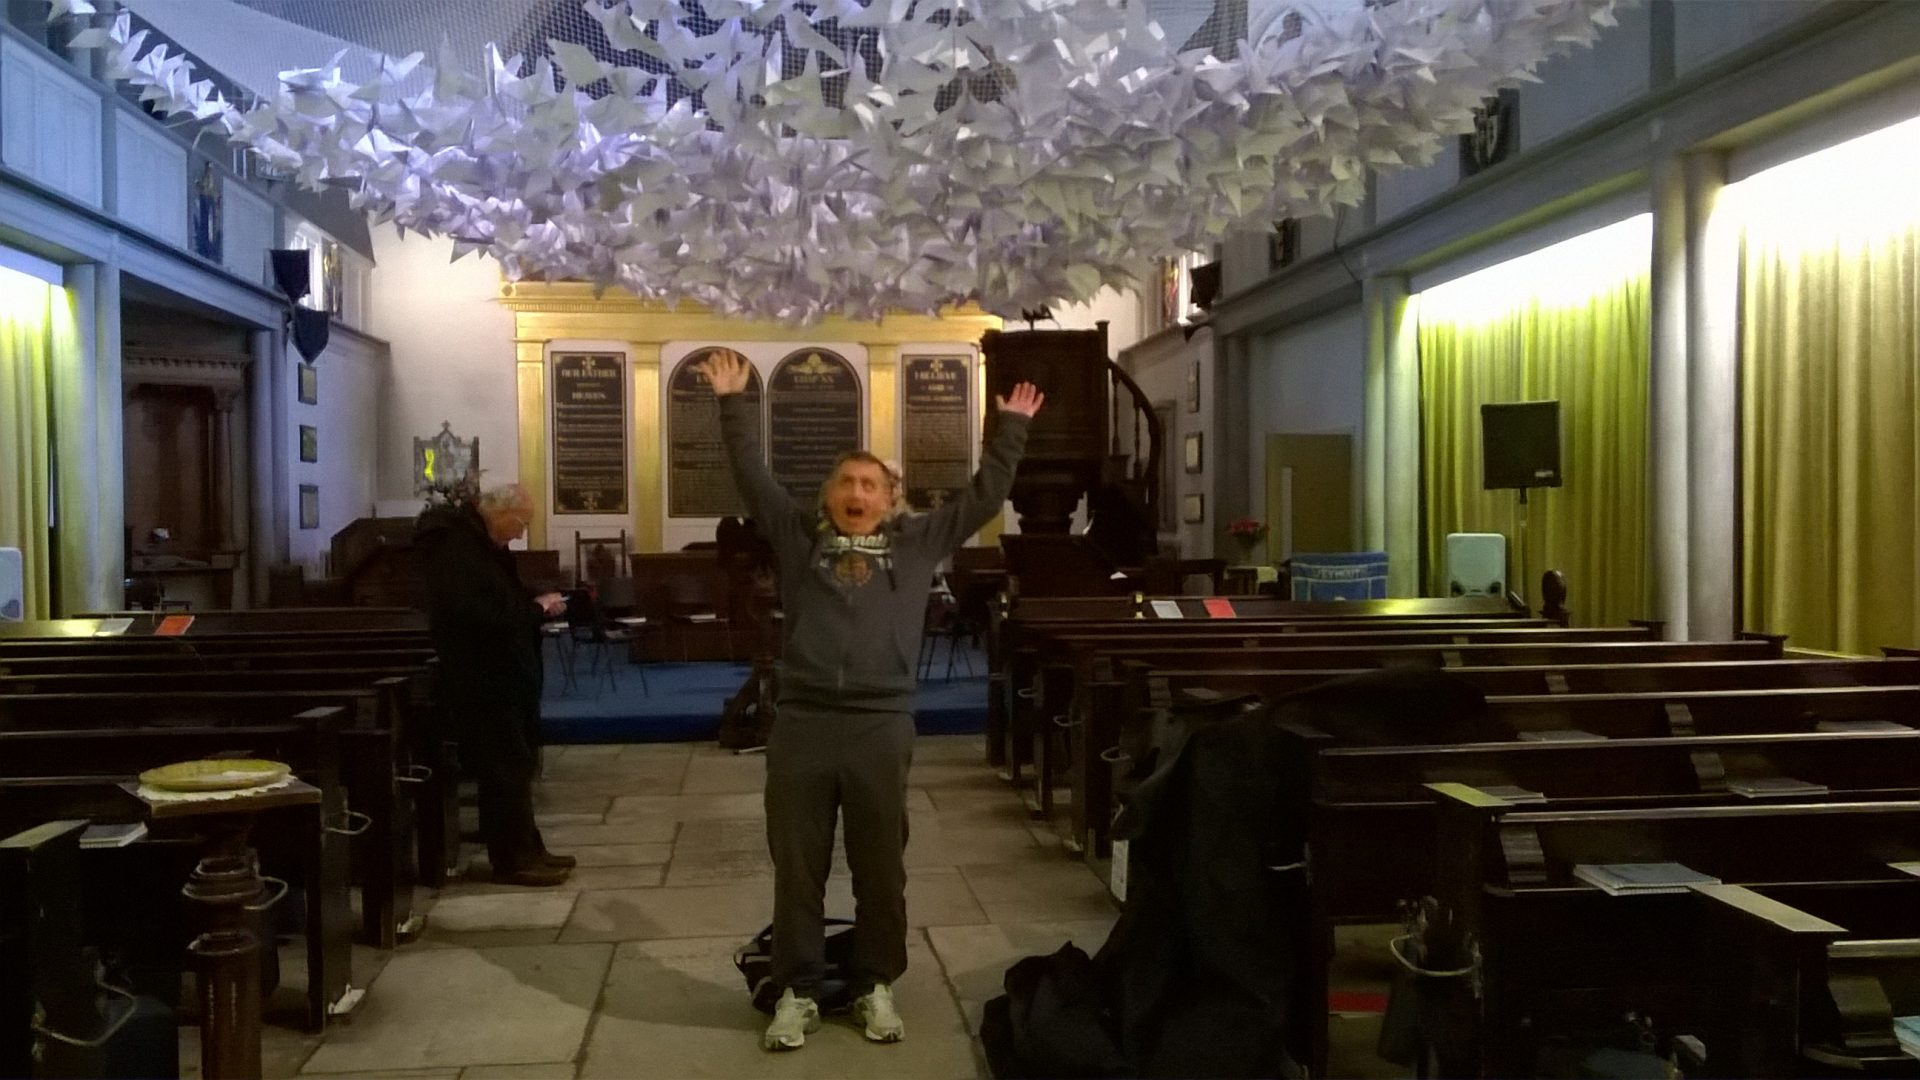 paper doves in church